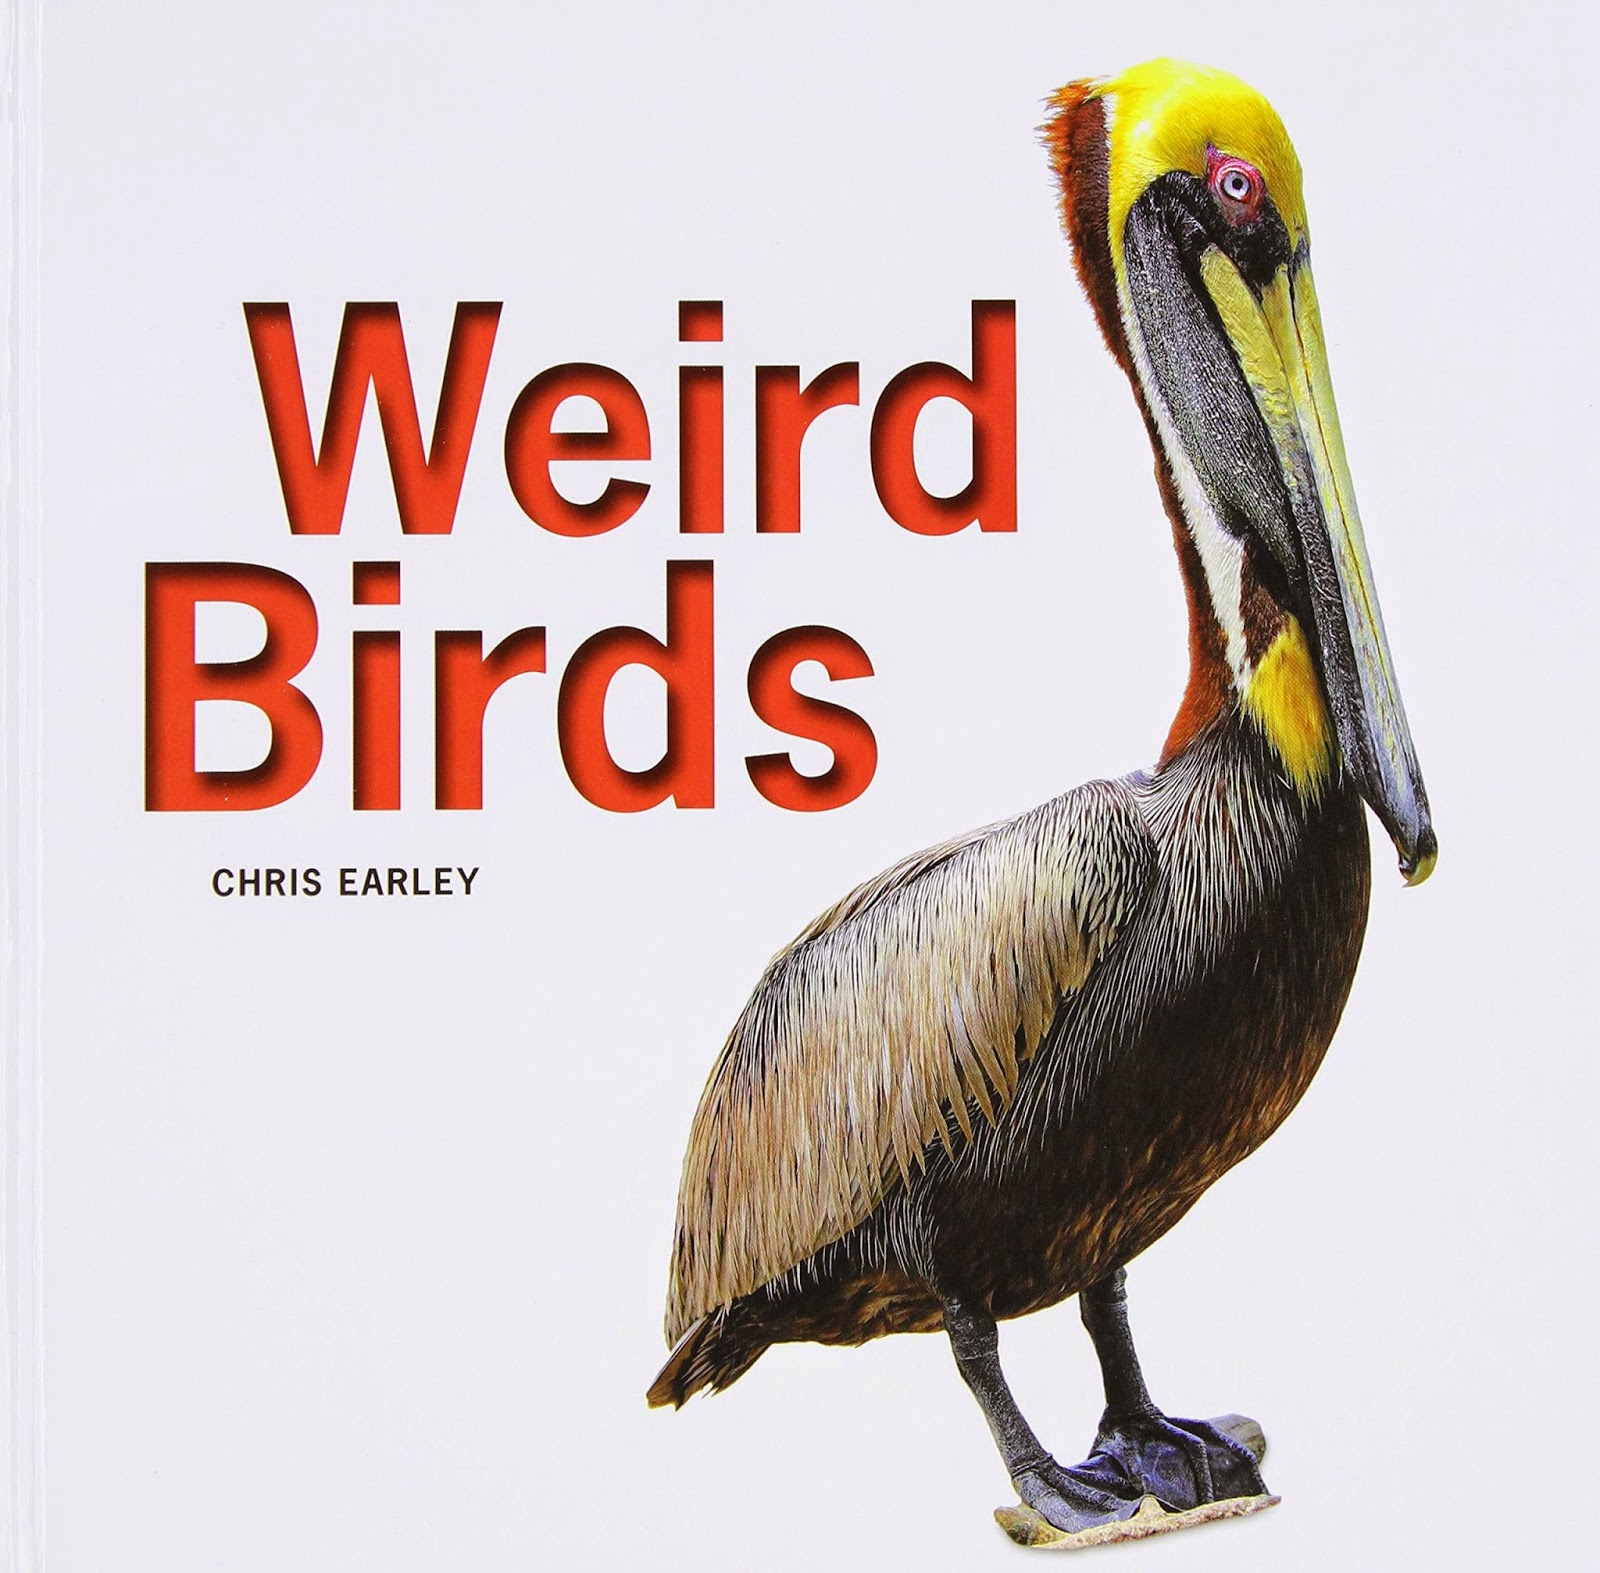 Childrens book list about birds with reviews